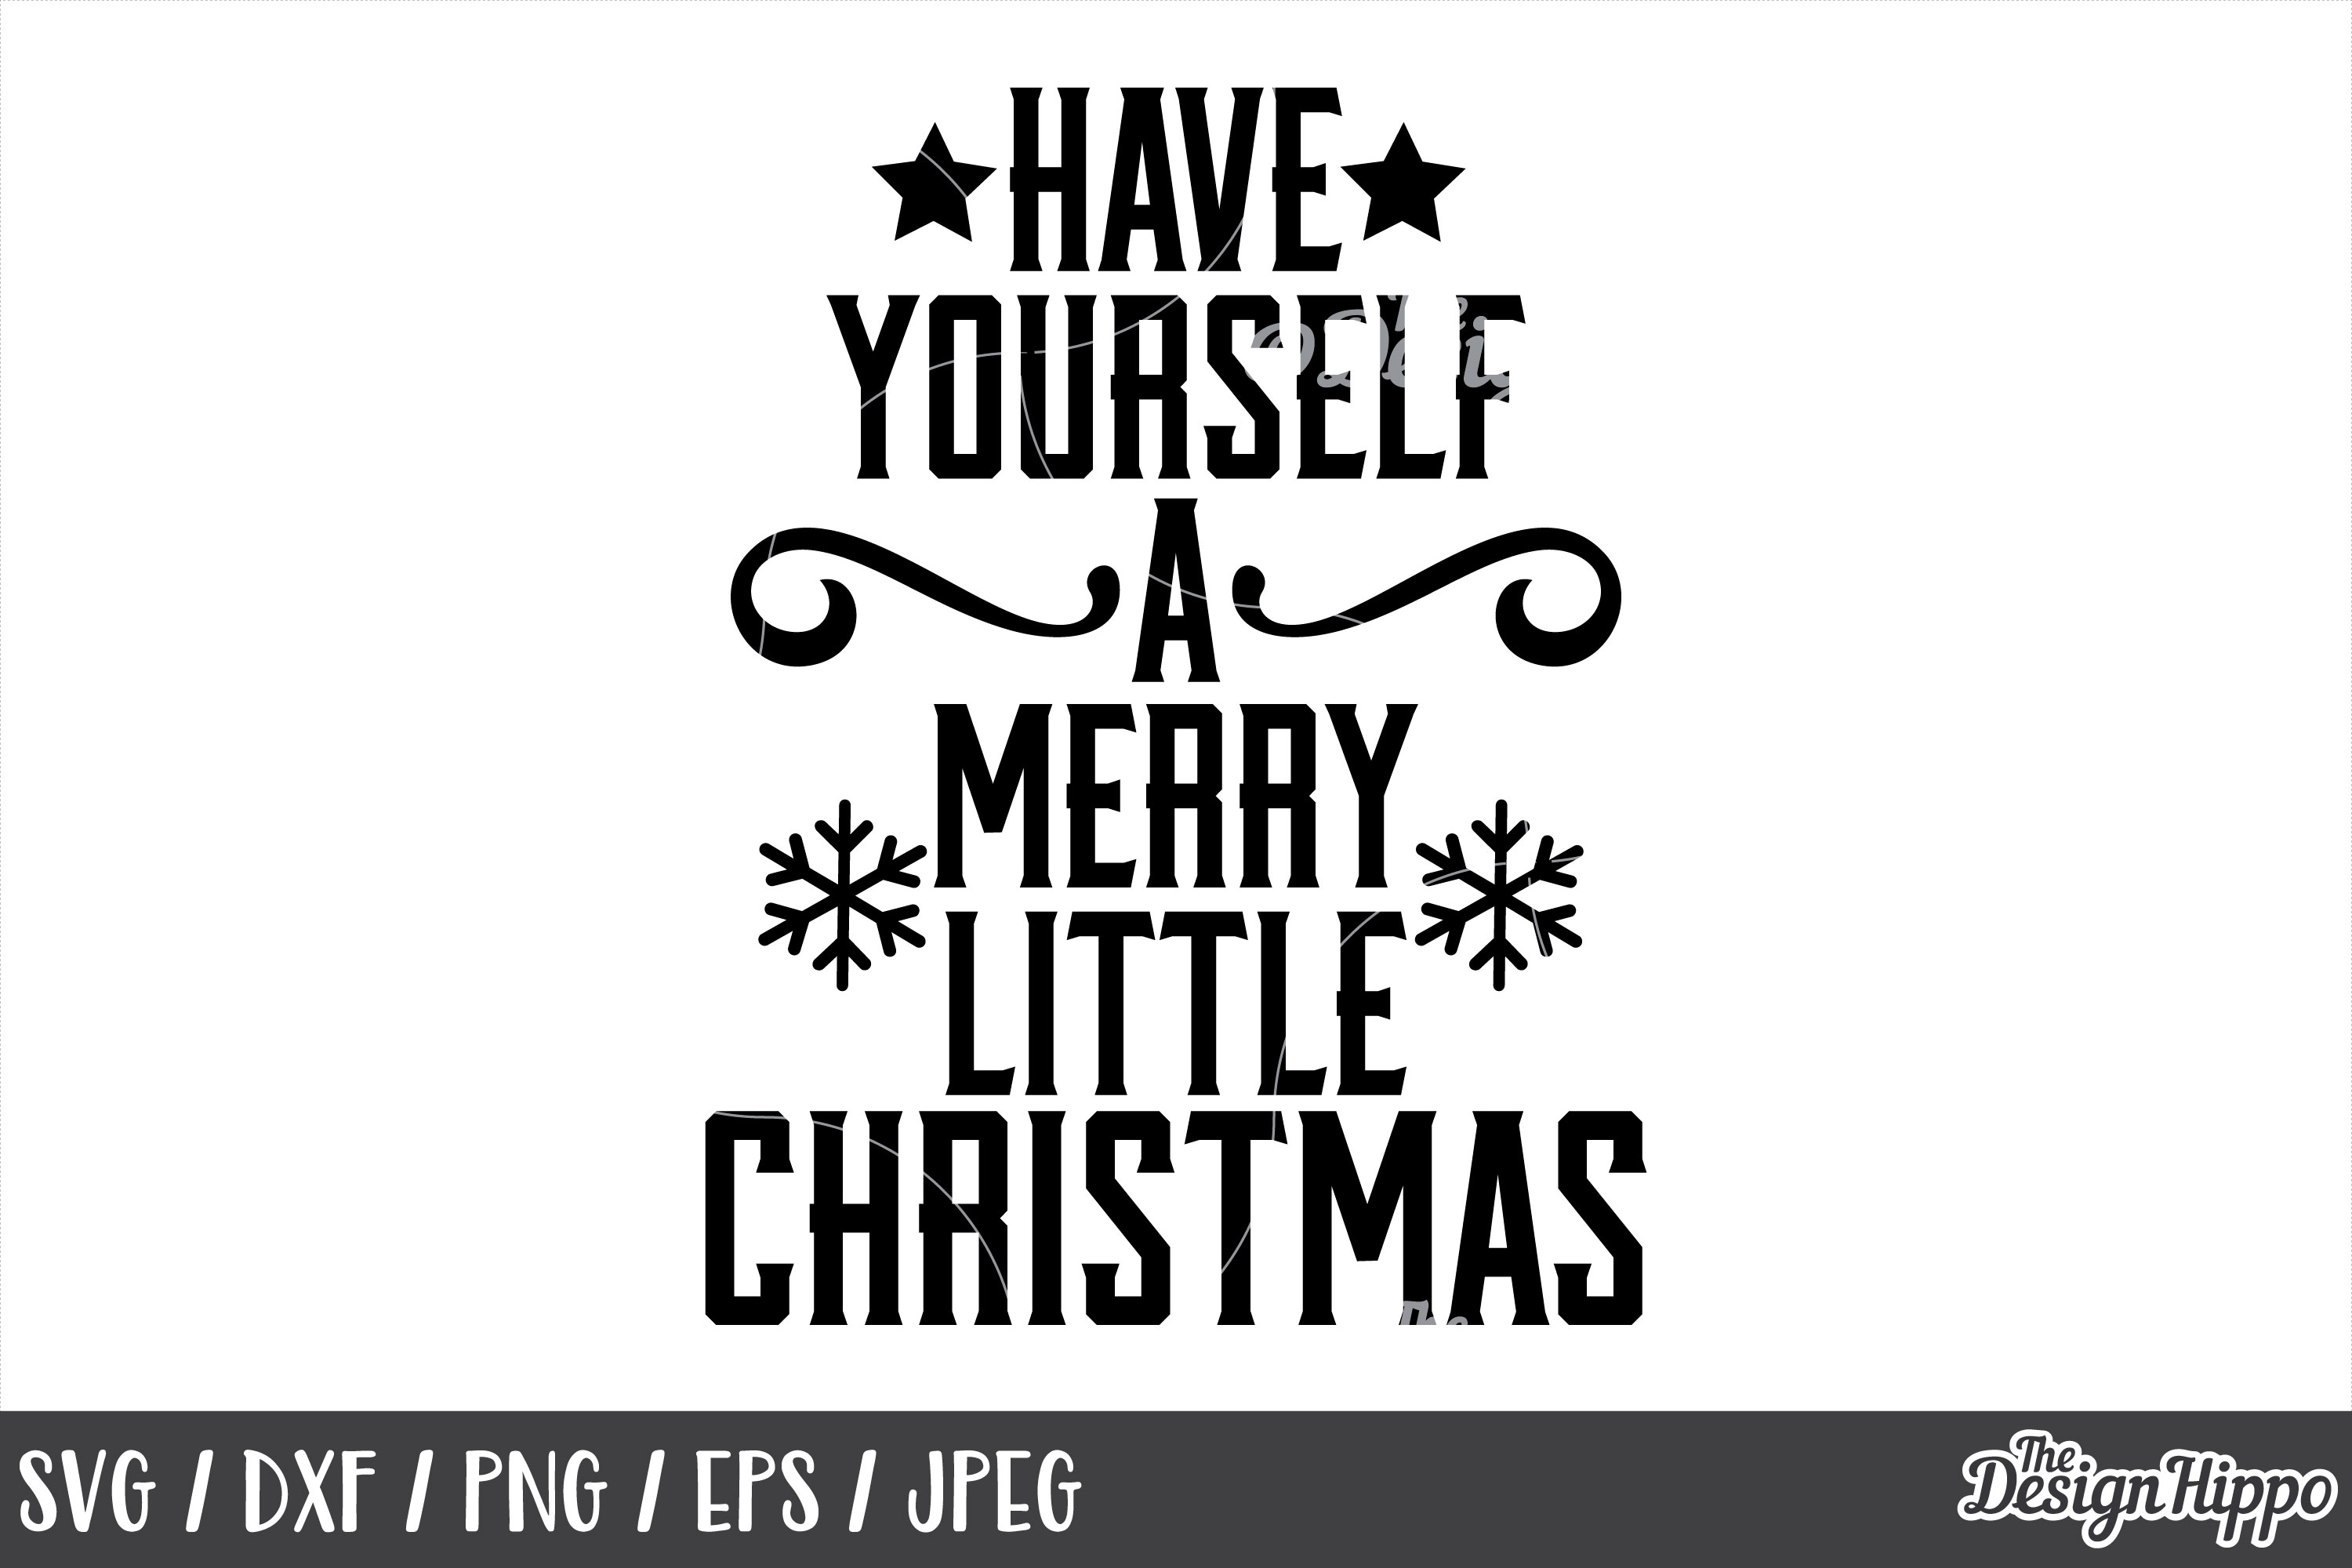 Have Yourself A Merry Little Christmas Svg.Have Yourself A Merry Little Christmas Svg Png Printable